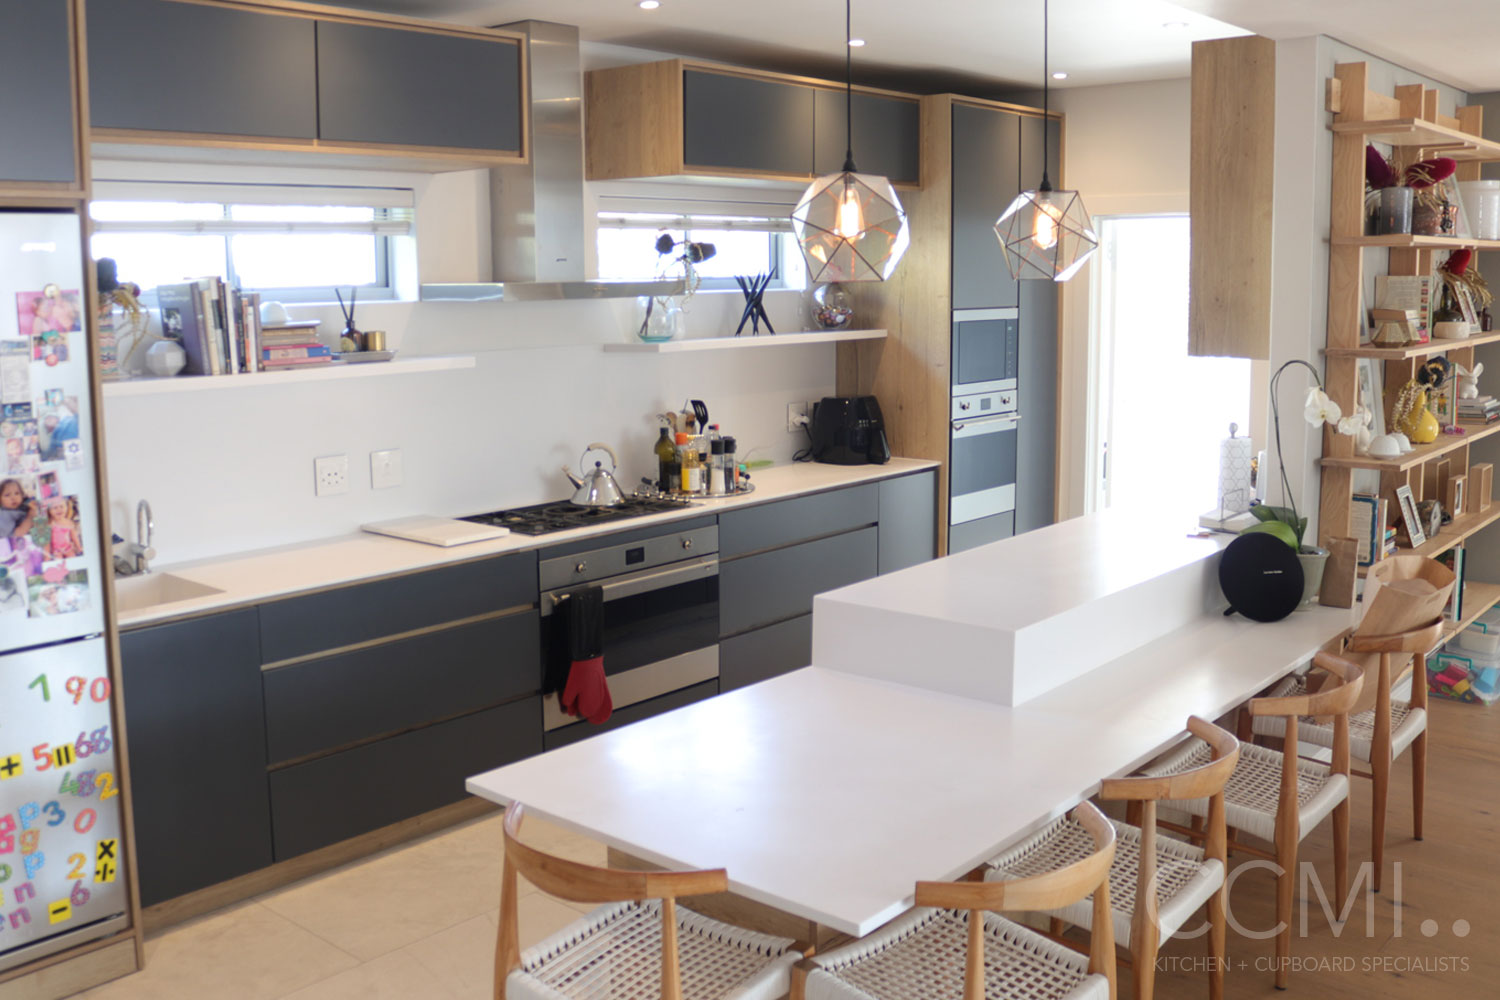 countertops split into two levels to accommodate children make this kitchen design family friendly